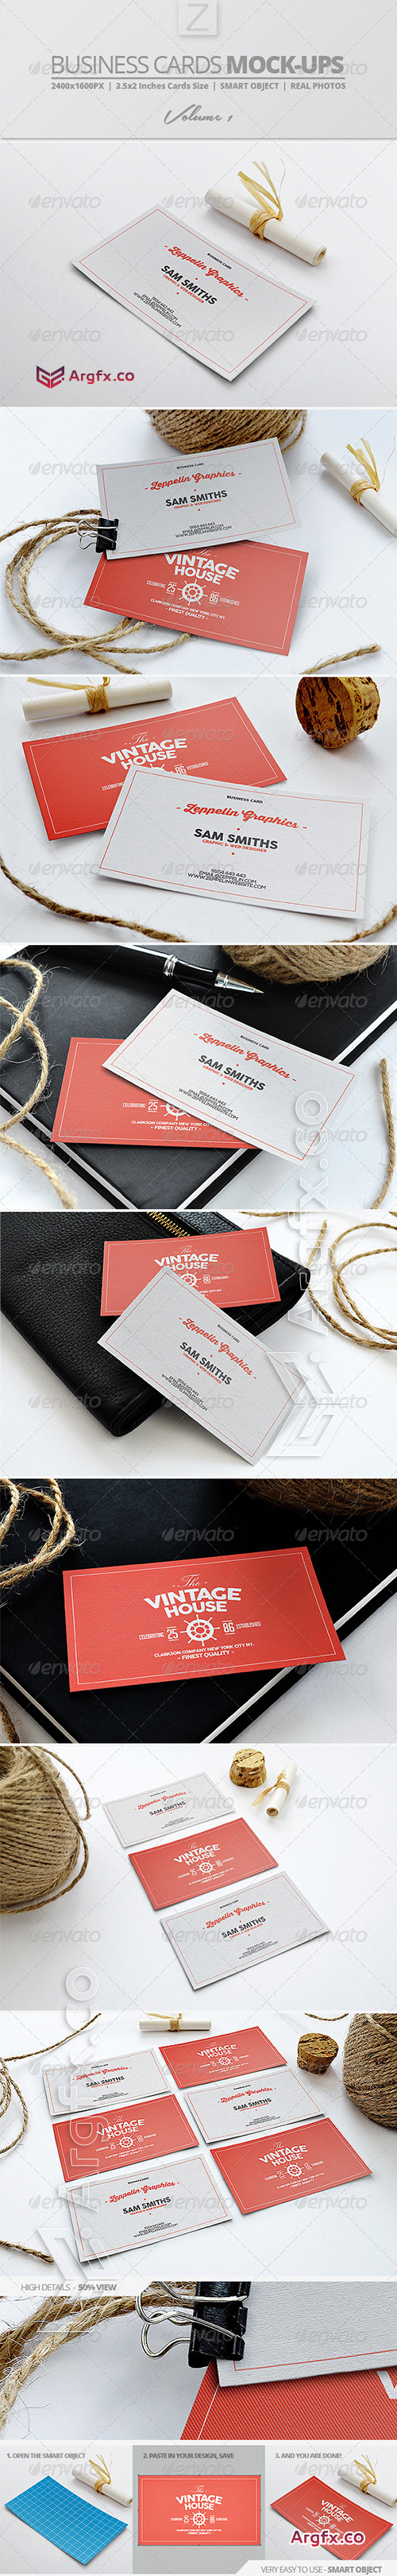 Business Card Mock-ups Vol.1 7855204